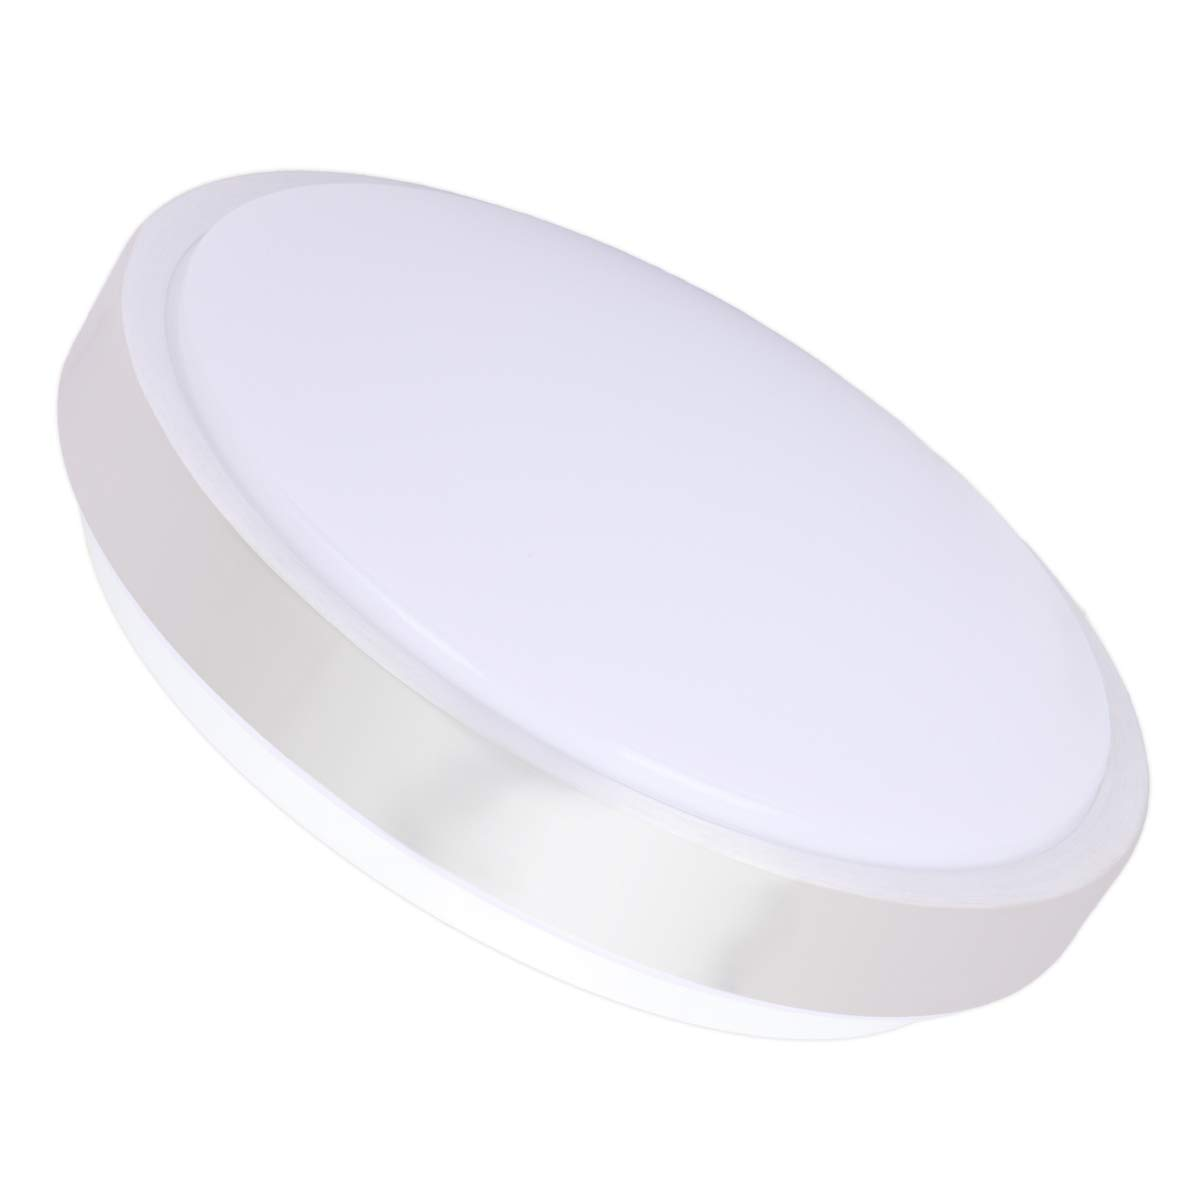 Drosbey 24W LED Ceiling Light, 12in Flush Mount Ceiling Lighting for Kitchen, Bathroom, Bedroom, Hallway, 3000 Lumens, 5000K Daylight White, 240W Incandescent Bulbs Equivalent